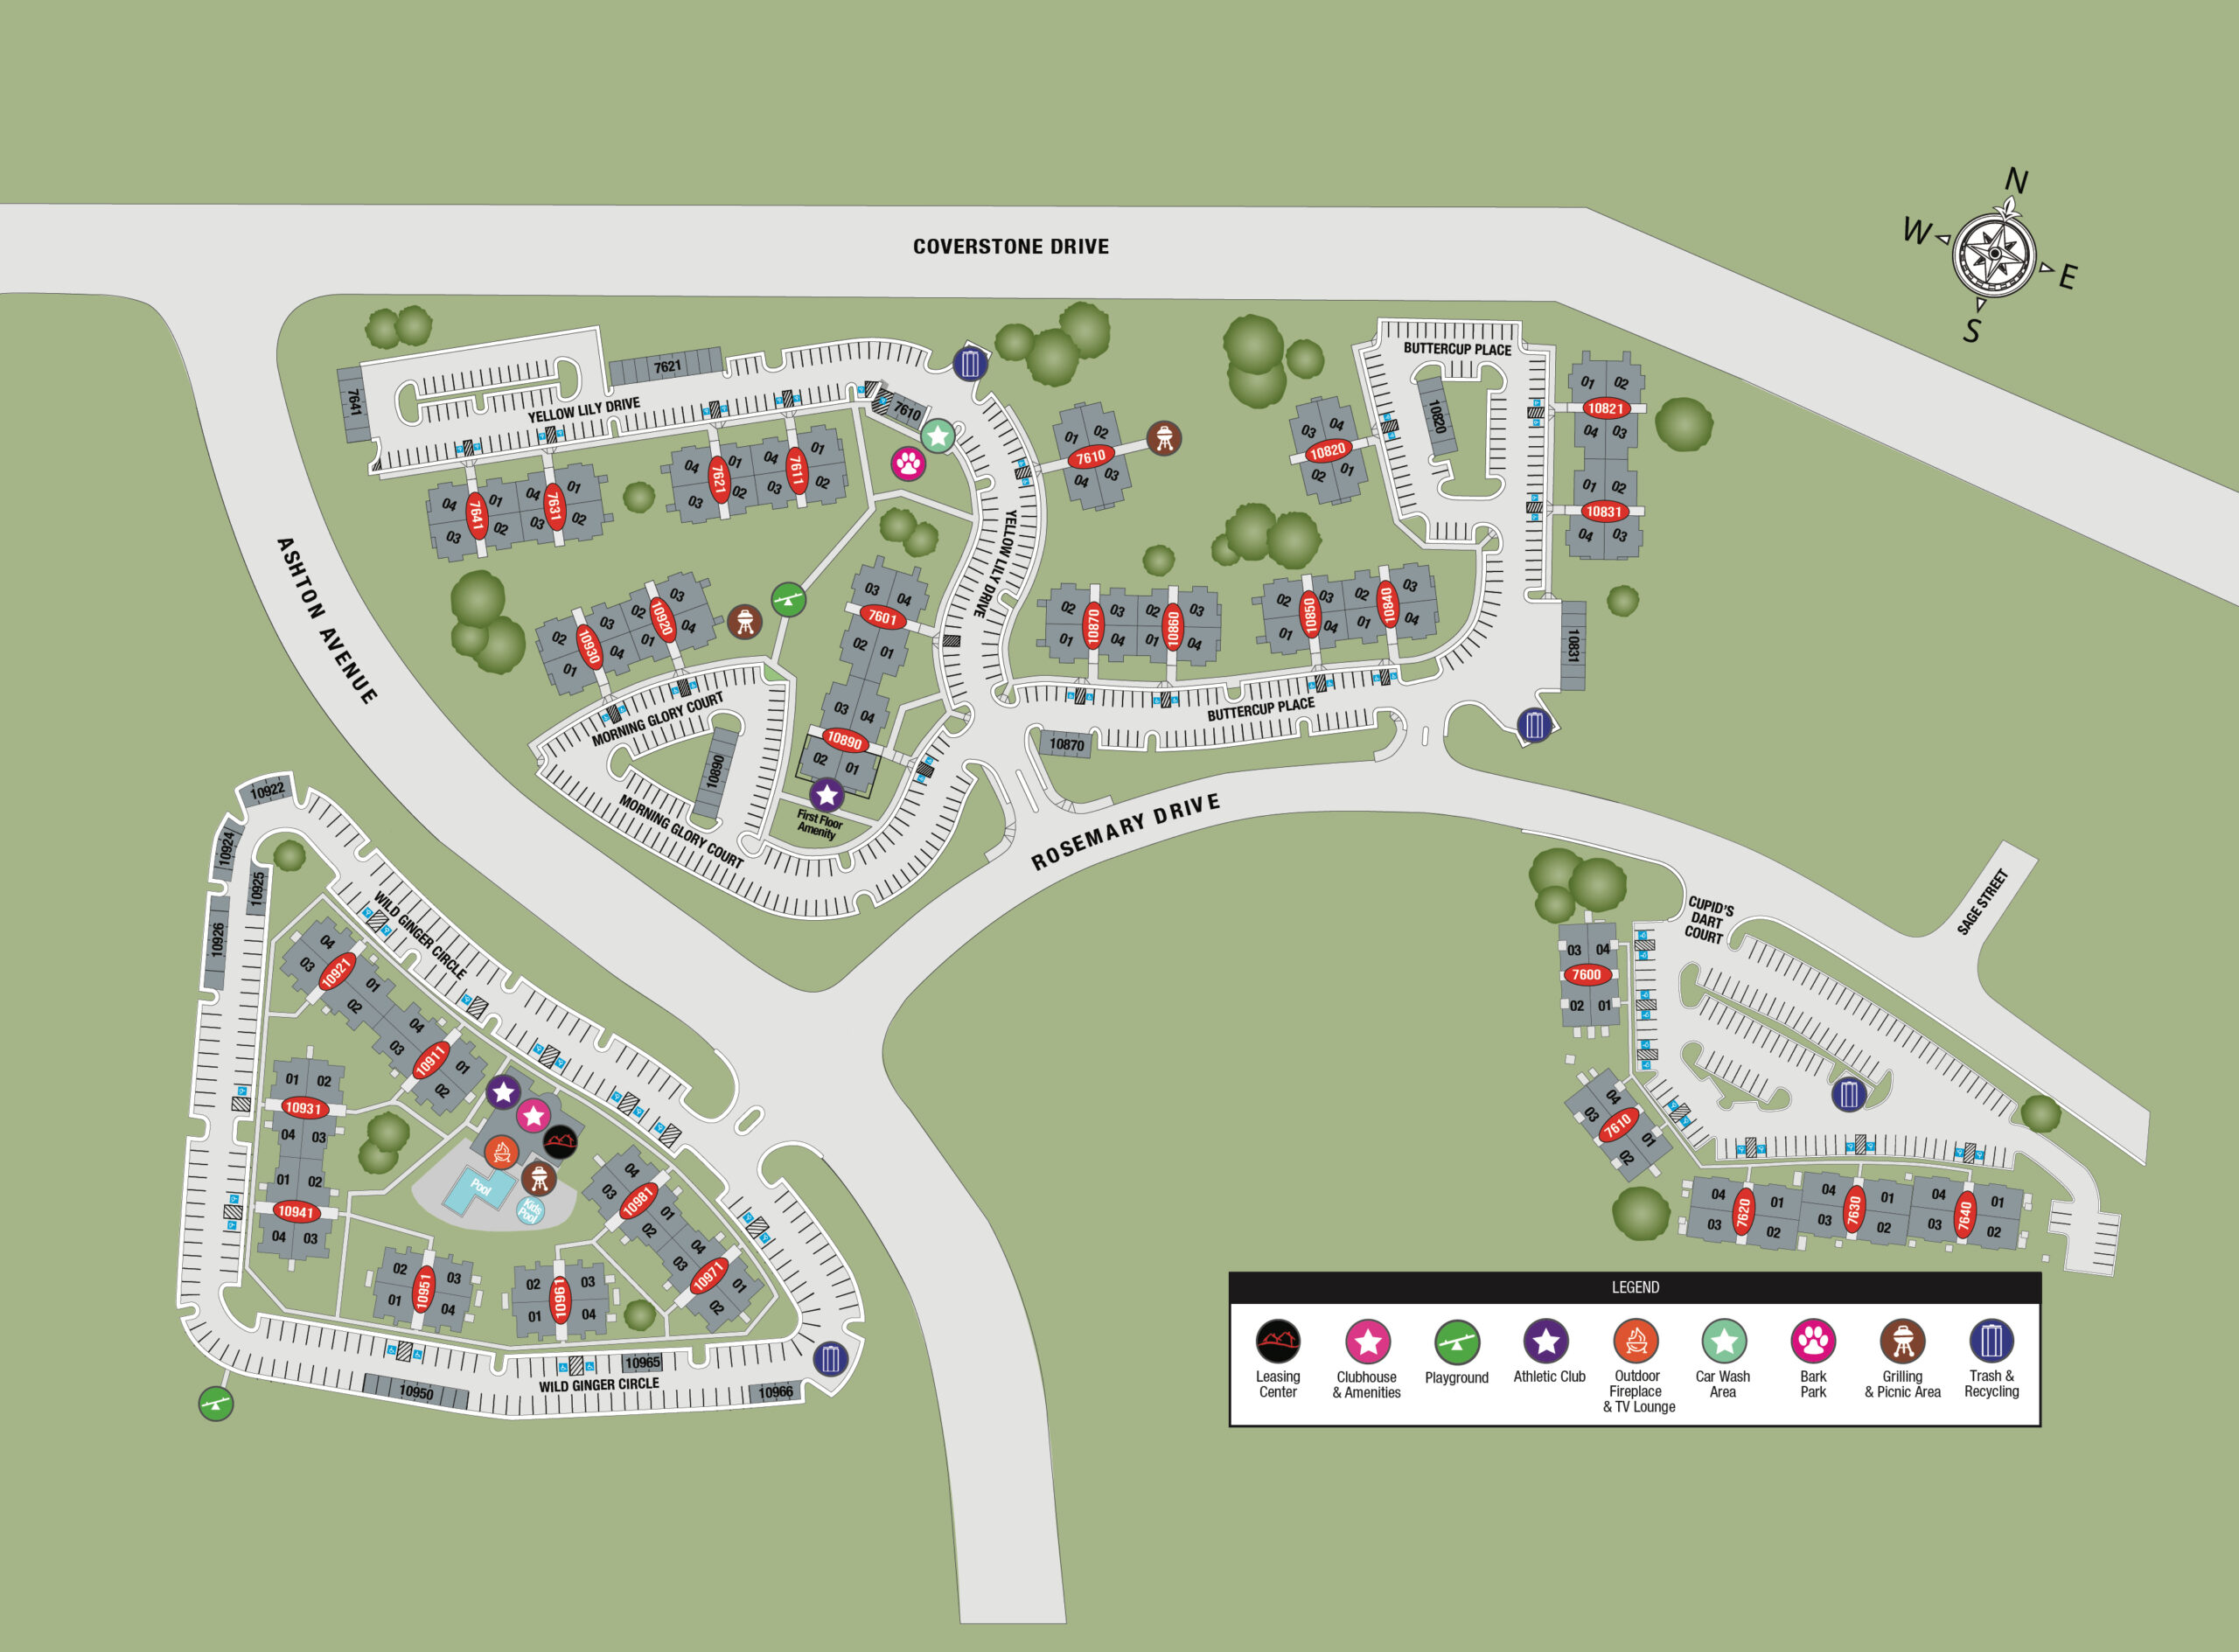 TGM Ridge Apartments Map. This picture shows the details of the community including roads and access ways. plus the buildings.